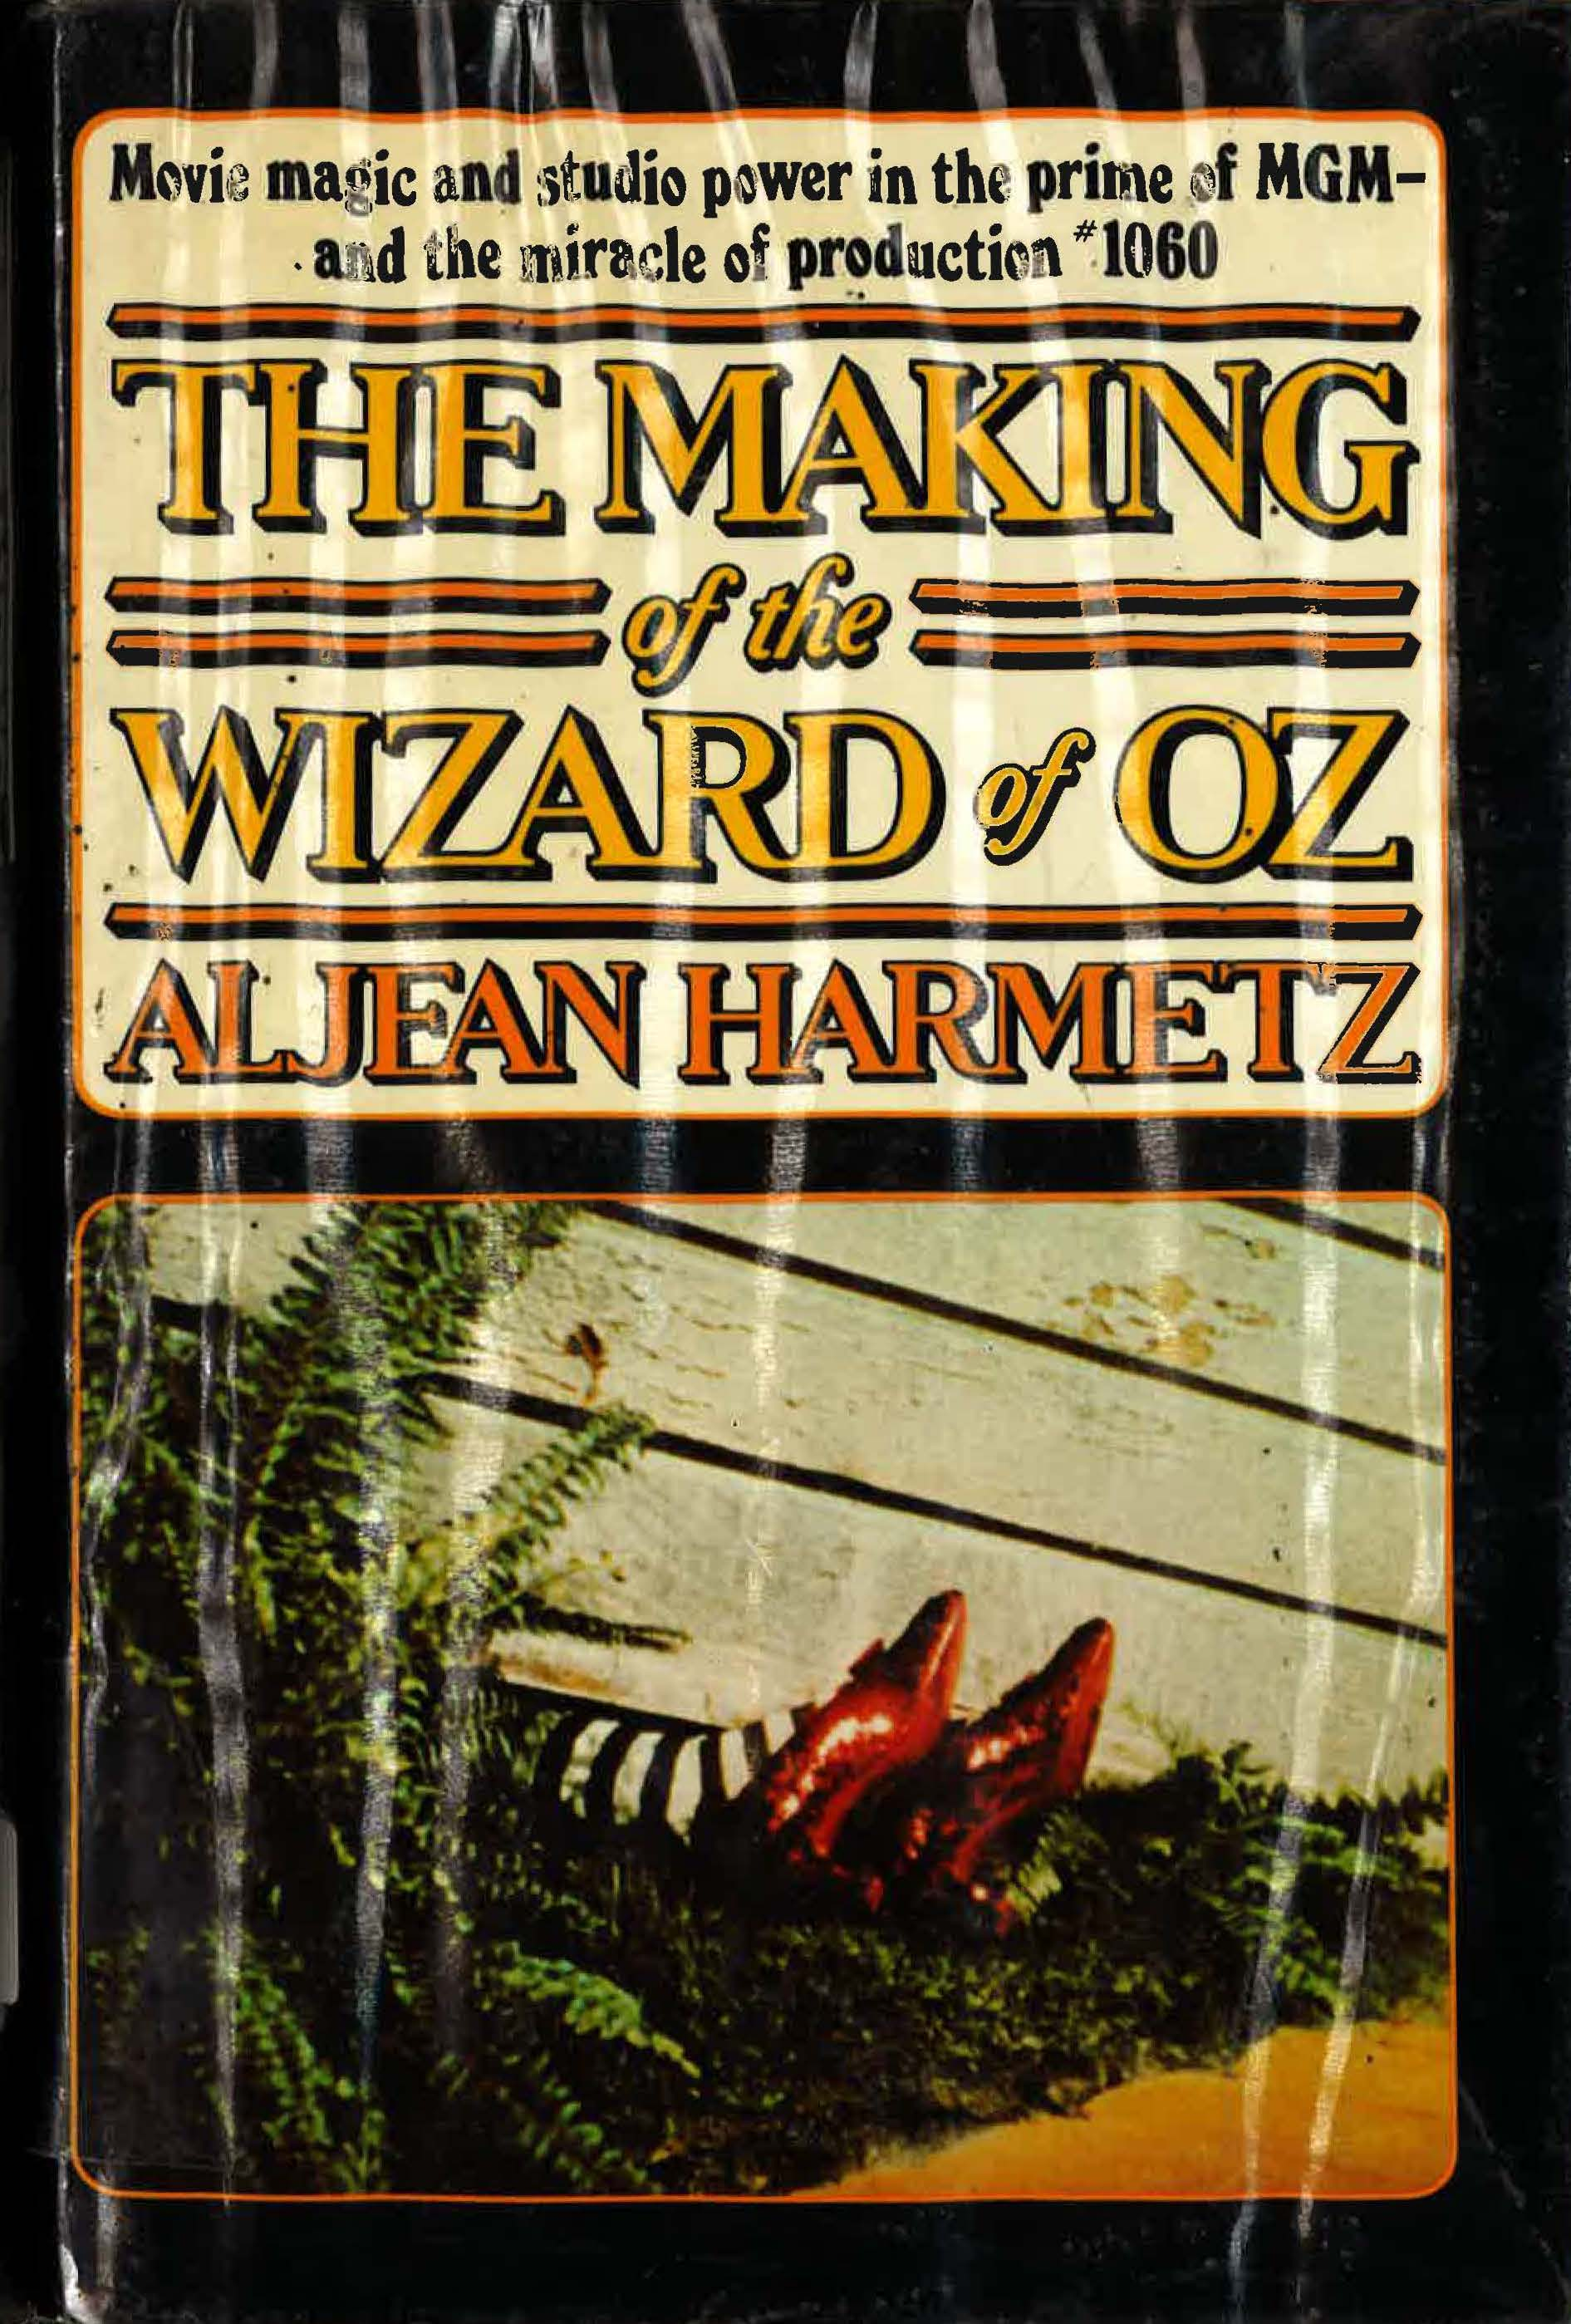 The Making of The Wizard of Oz by Aljean Harmetz